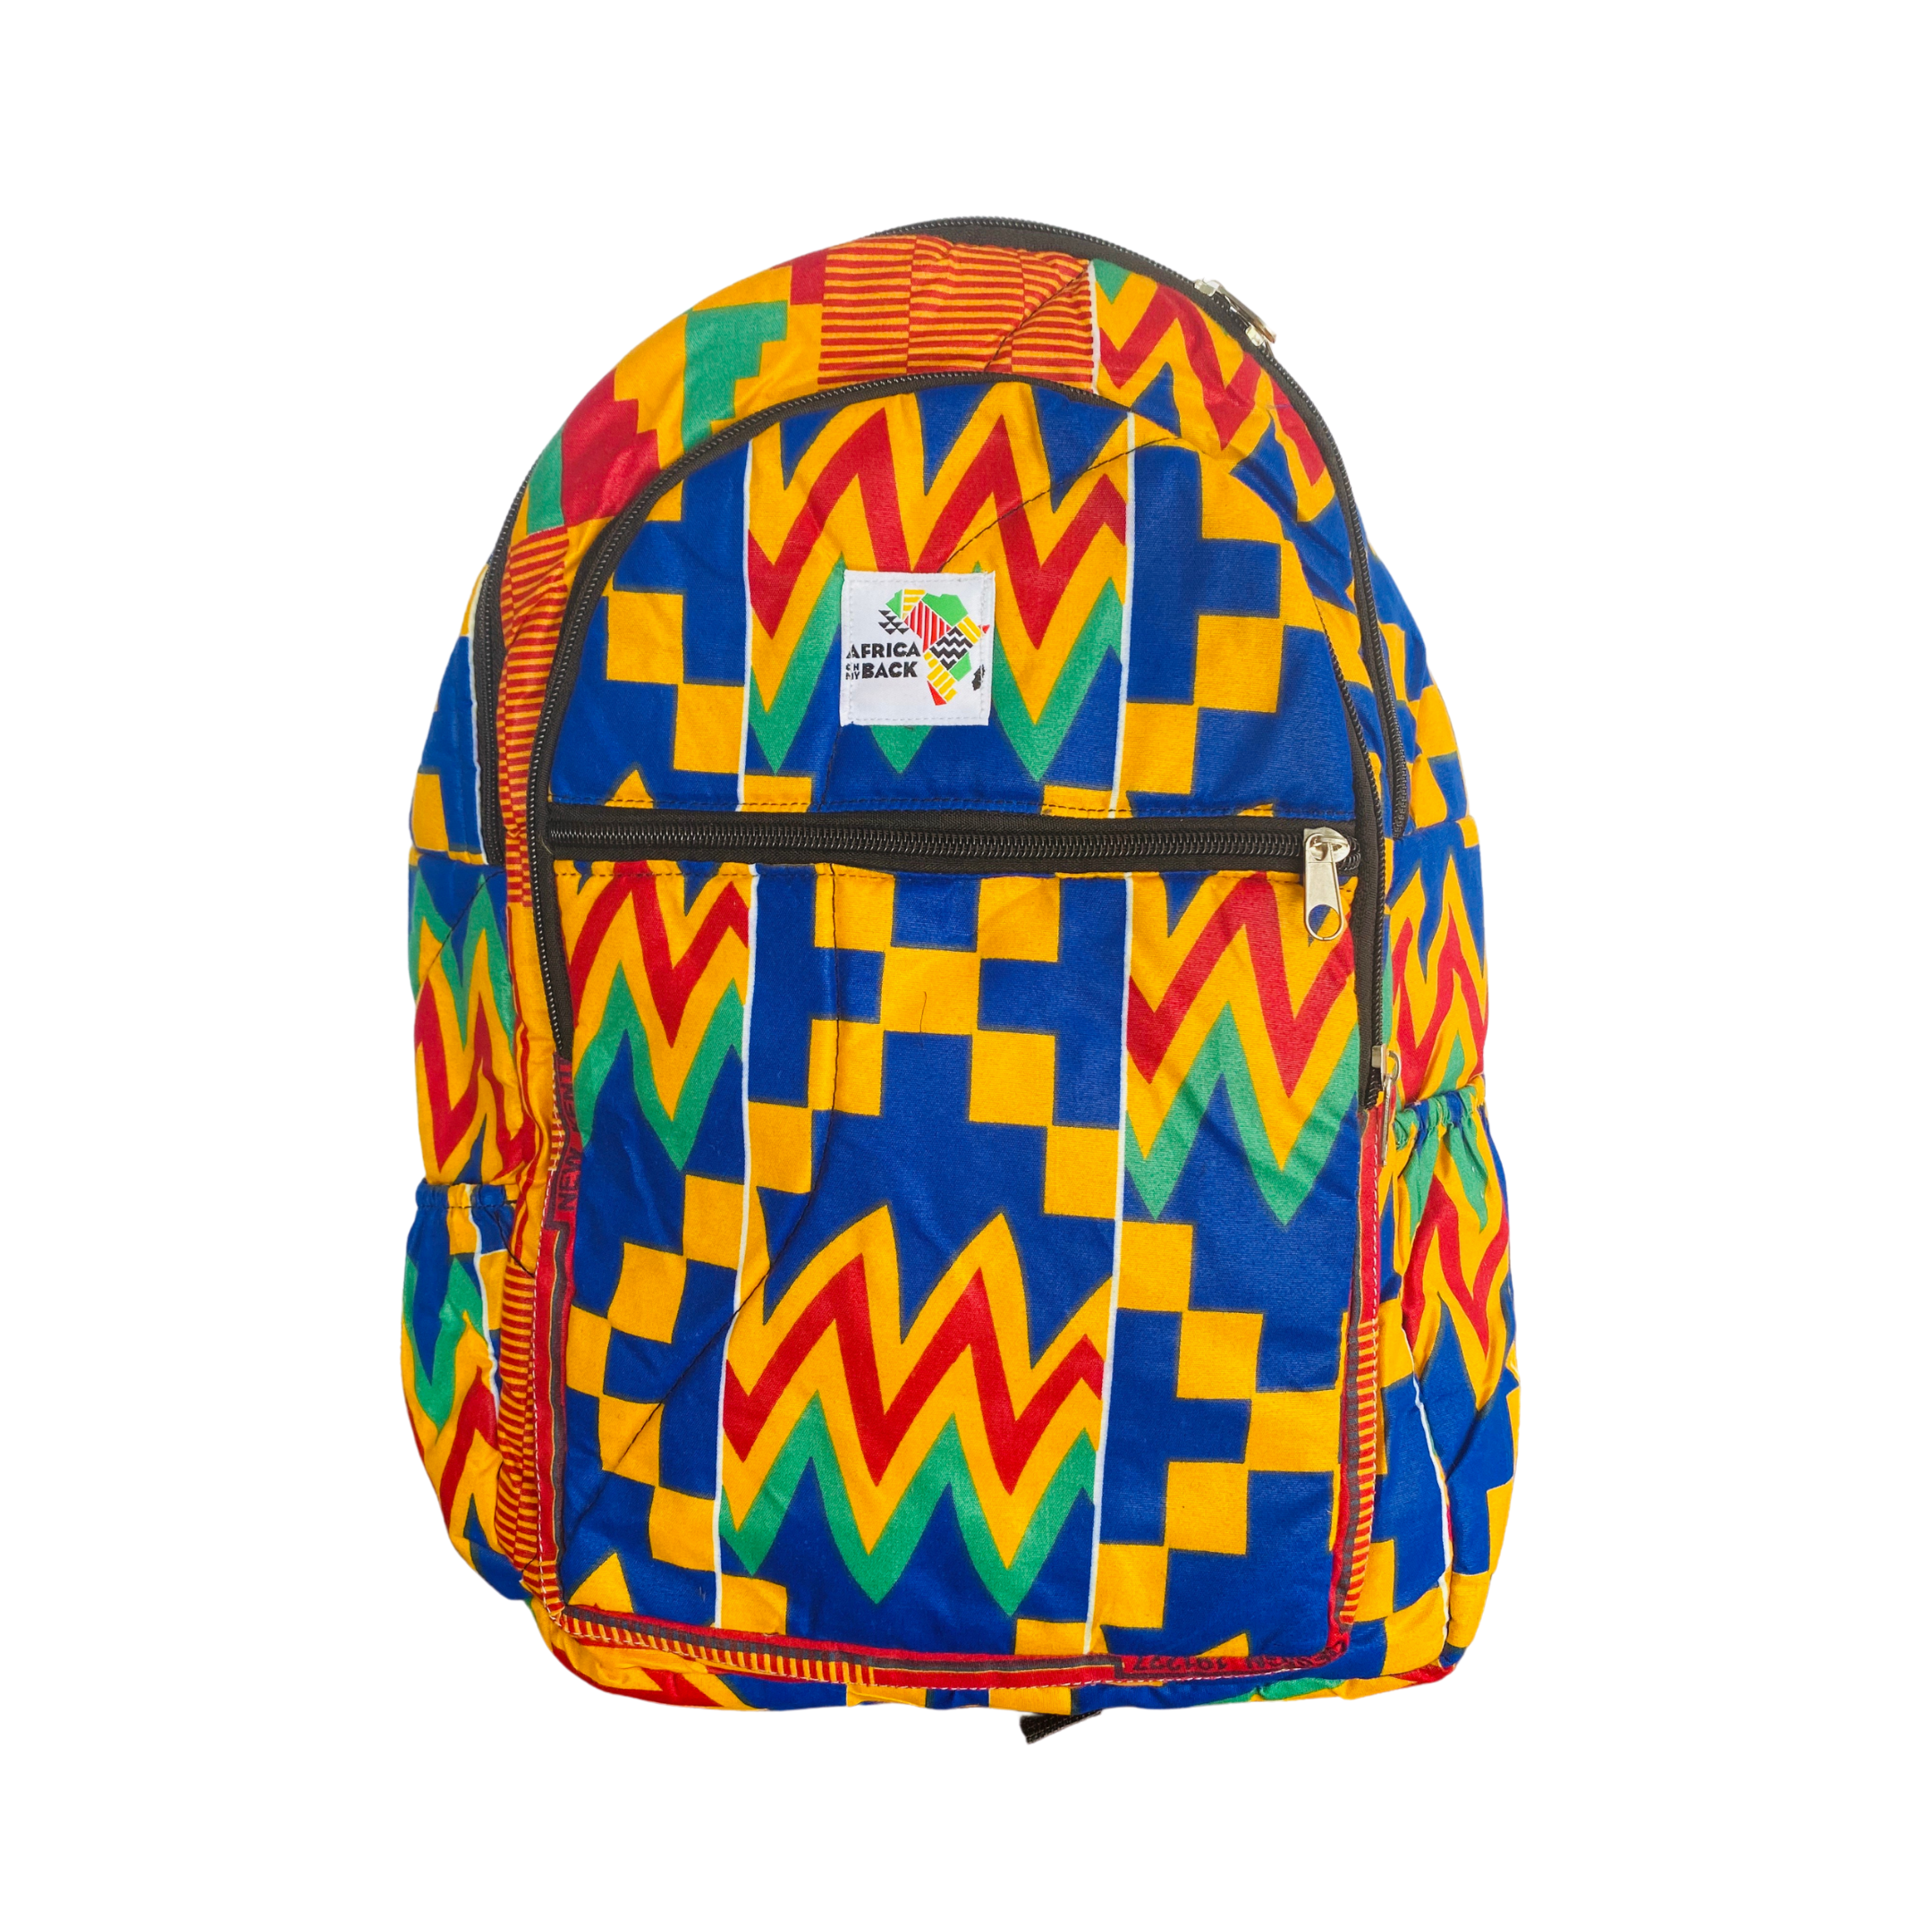 Just For Us Multi Color Mid Size Backpack